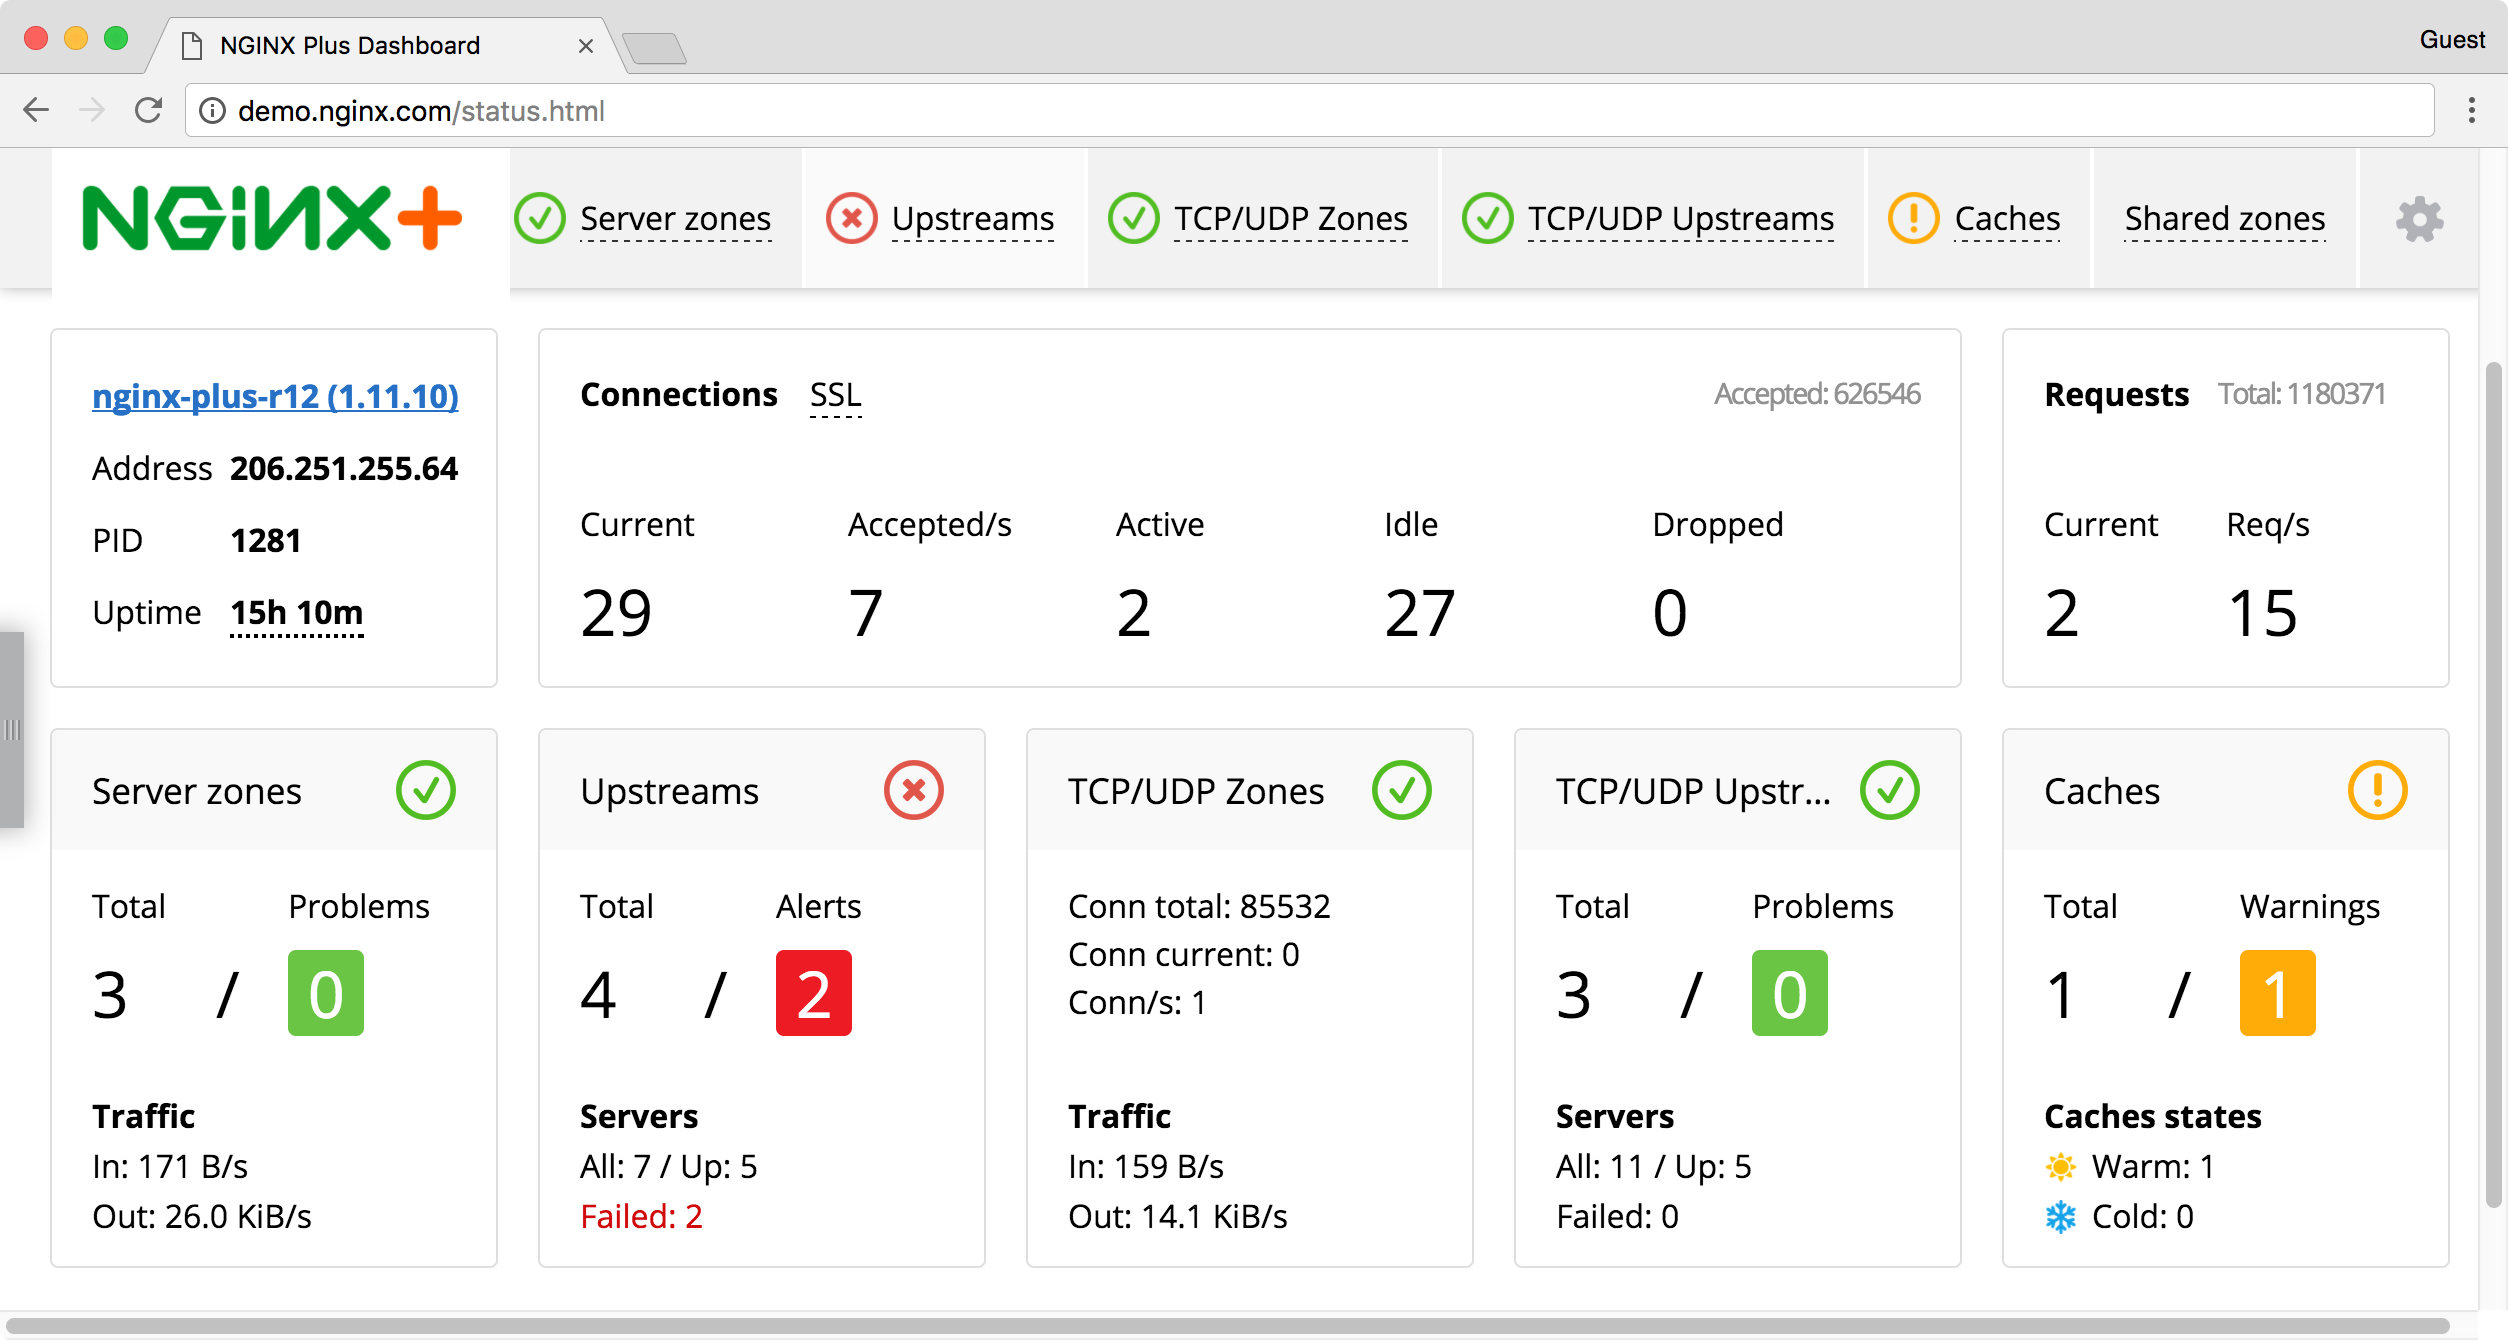 NGINX Plus has a graphical dashboard with key performance numbers